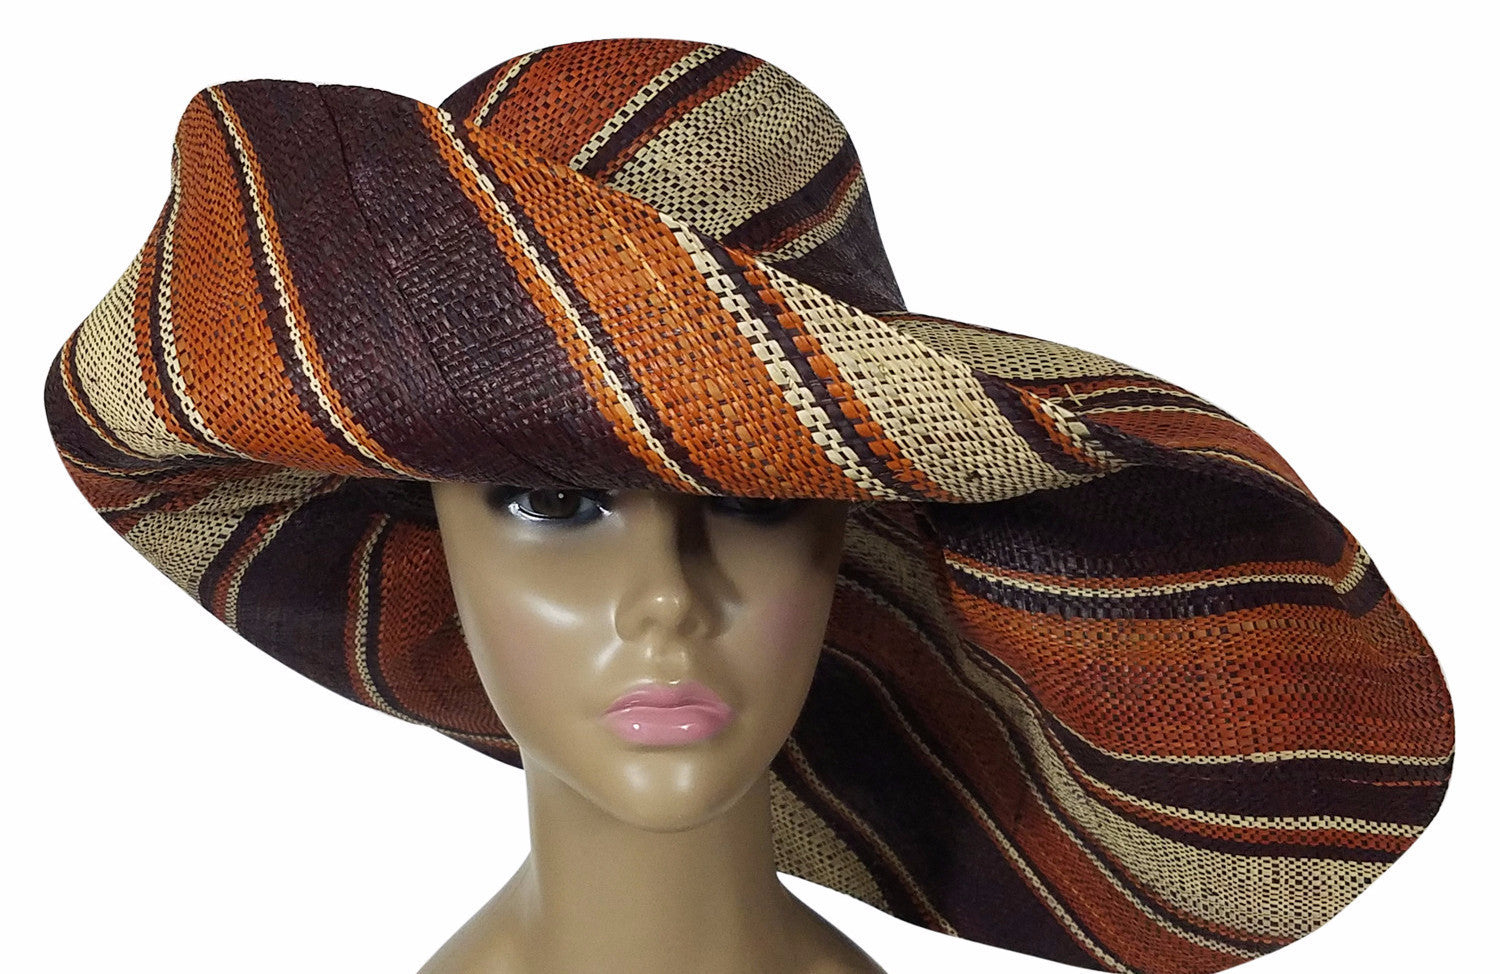 Zandra: Authentic African Hand Made Multi-Colored Madagascar Big Brim Raffia Sun Hat